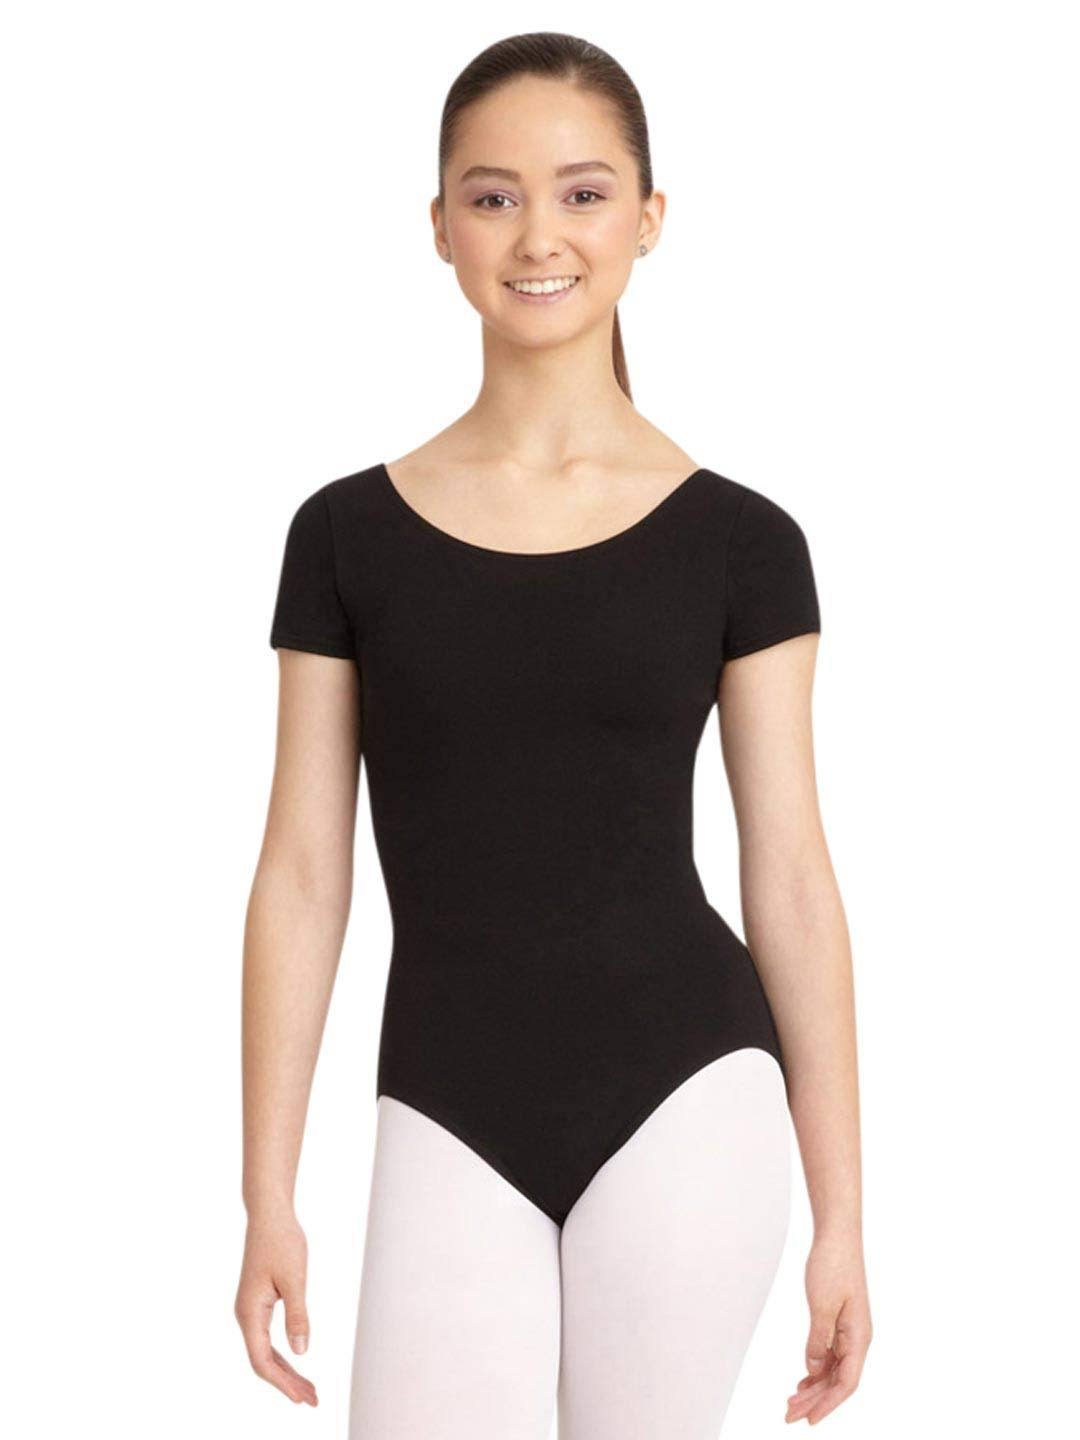 Capezio Short Sleeve Leotard, Women's, Size: XL (125), Black